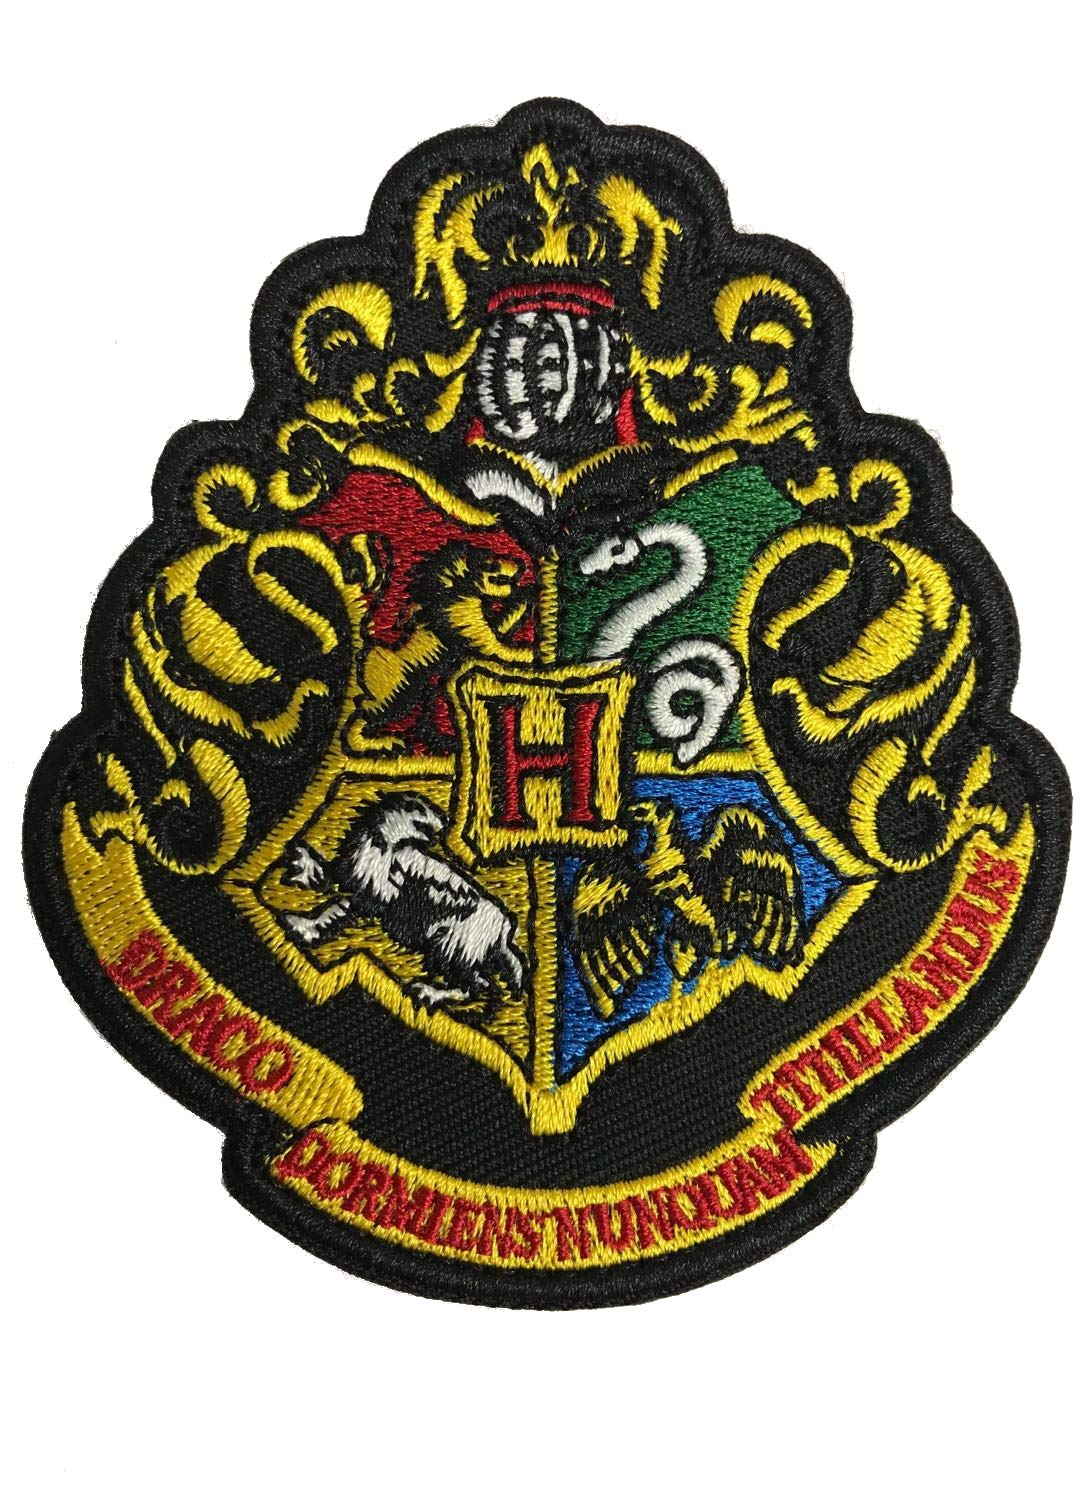 Gryffindor Oyster-Patch Harry Potter Hogwarts casa di Grifondoro//Tassorosso//Corvonero//Serpeverde Tactical patch Hook /& Loop